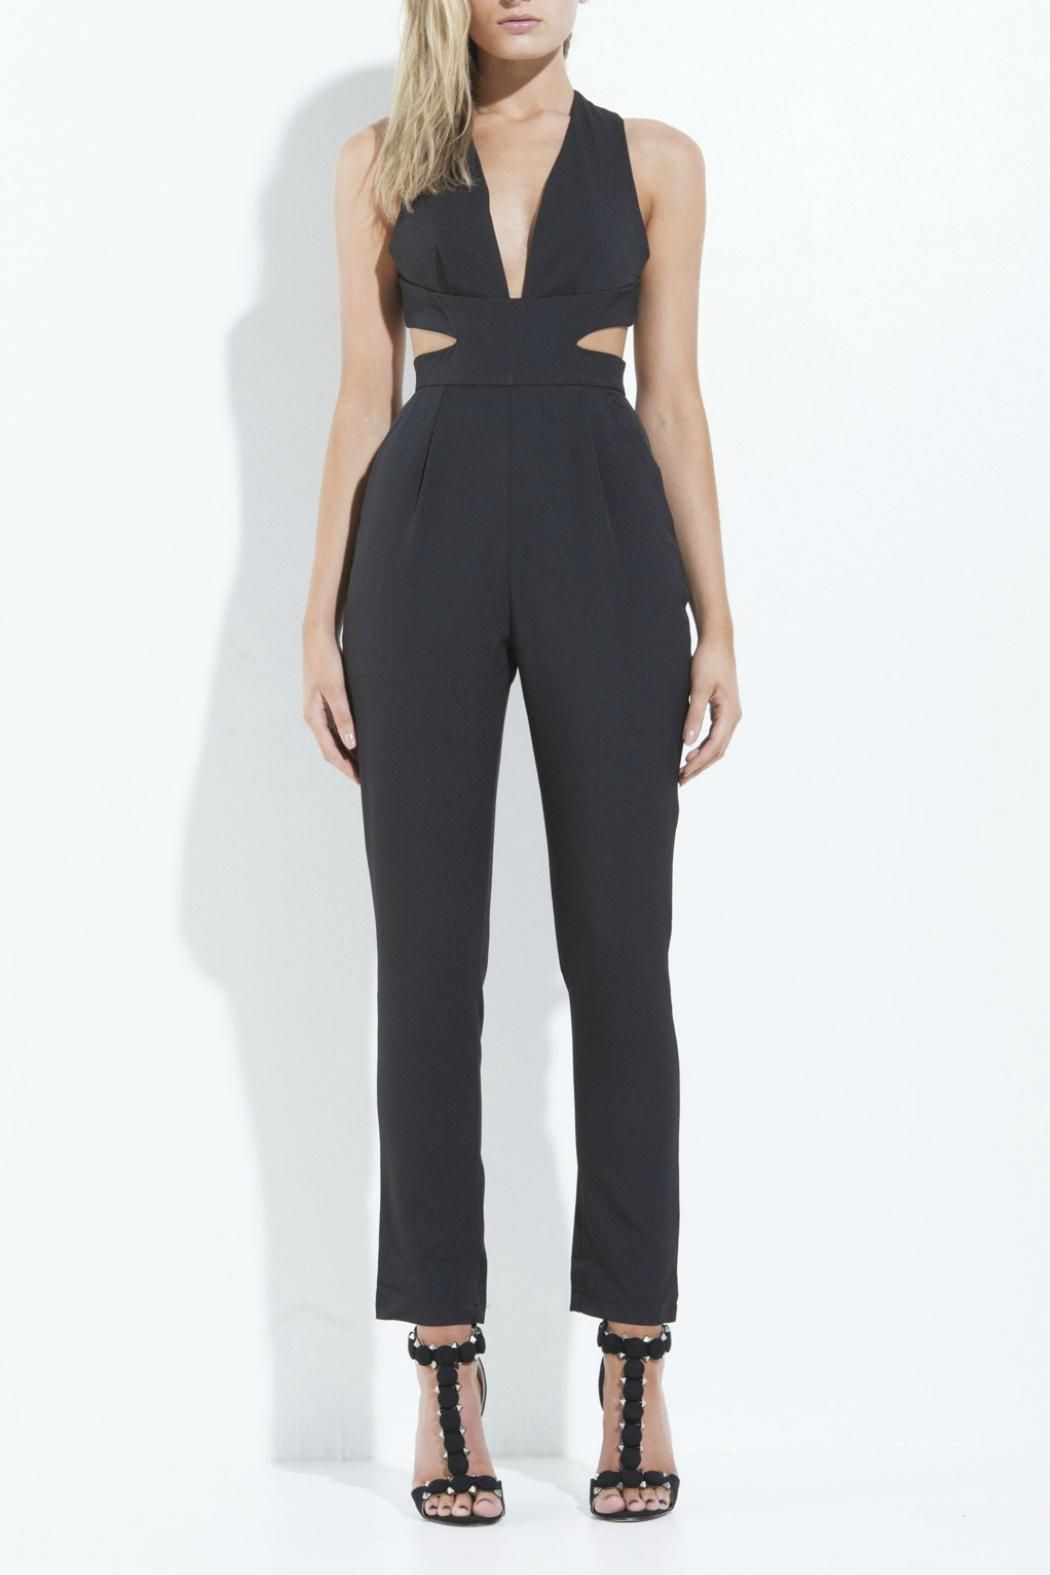 ab2591d192 Structured jumpsuit with low neck and cutouts on sides. Crossover back  detail and invisible zip closure at back. Fully lined. Composition  65%  Cotton  35% ...